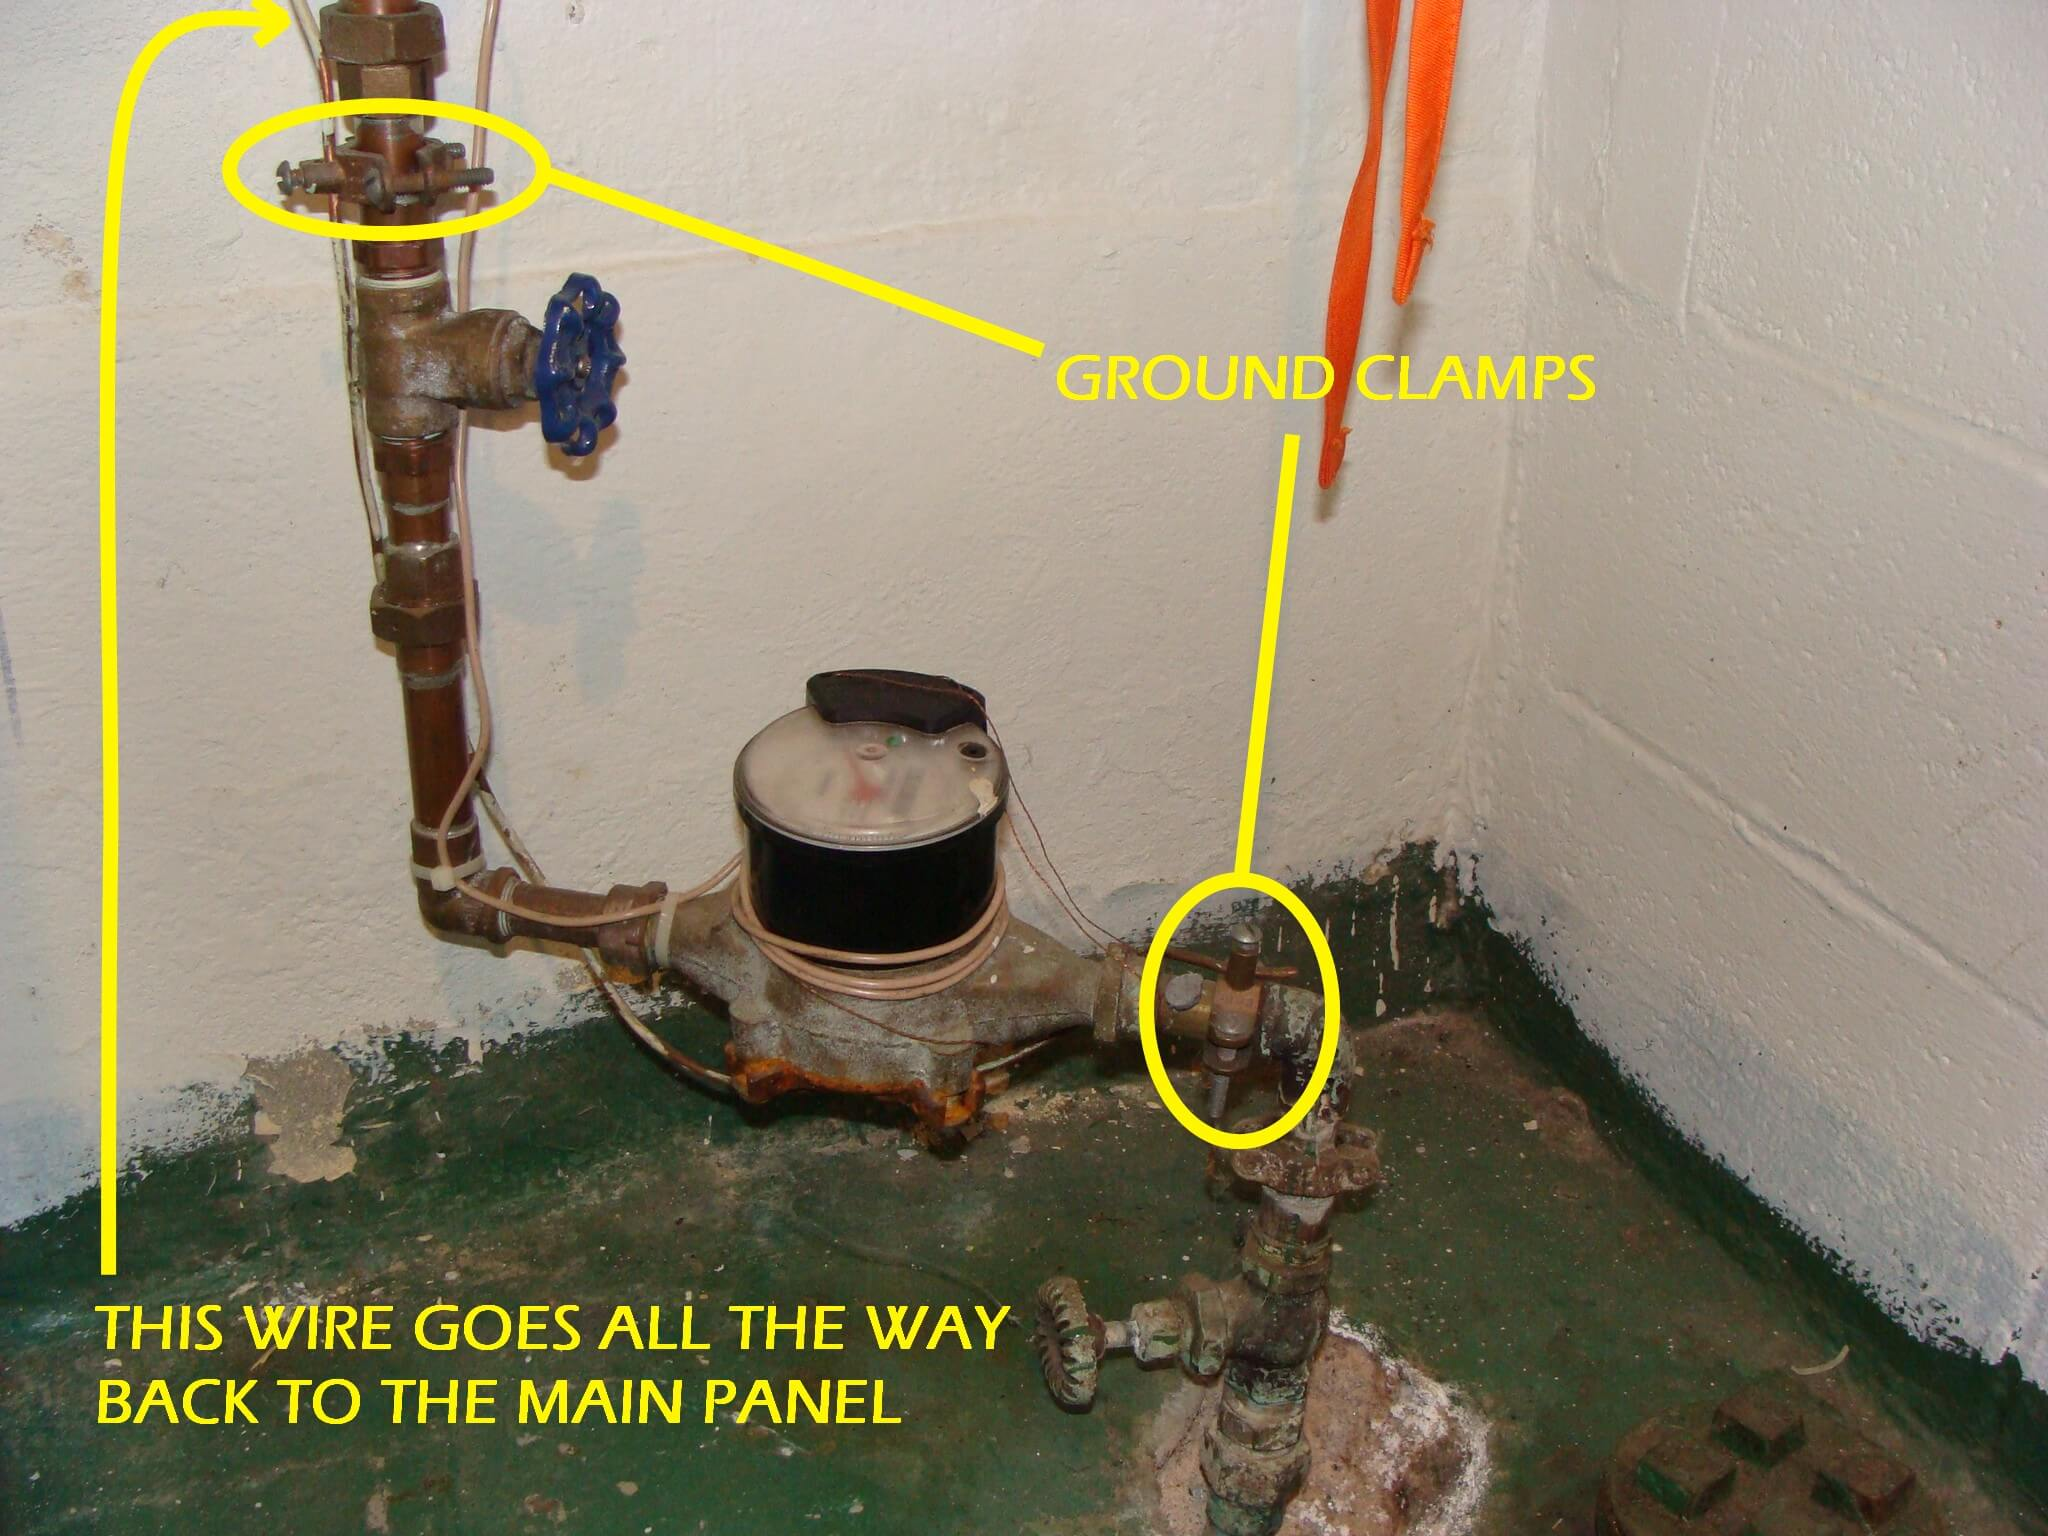 Jumper Wire Water Heater Trusted Wiring Diagram Interior Bonding Pipes At Full Hd Maps Disconnect